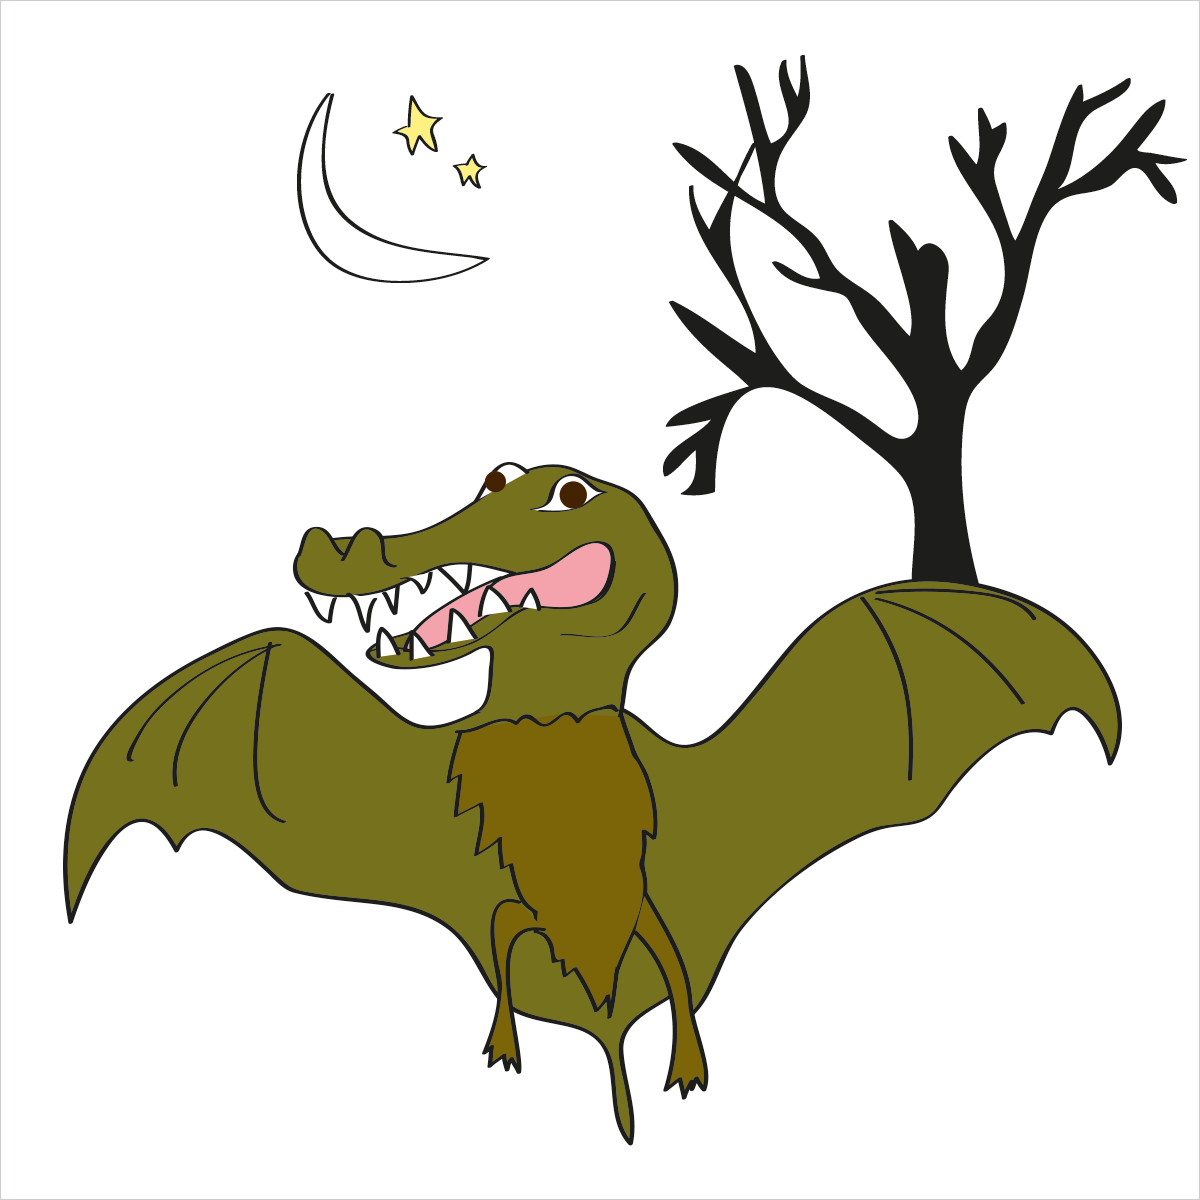 He has razor sharp teeth and sleeps upside down in a swamp. He is GATORBAT